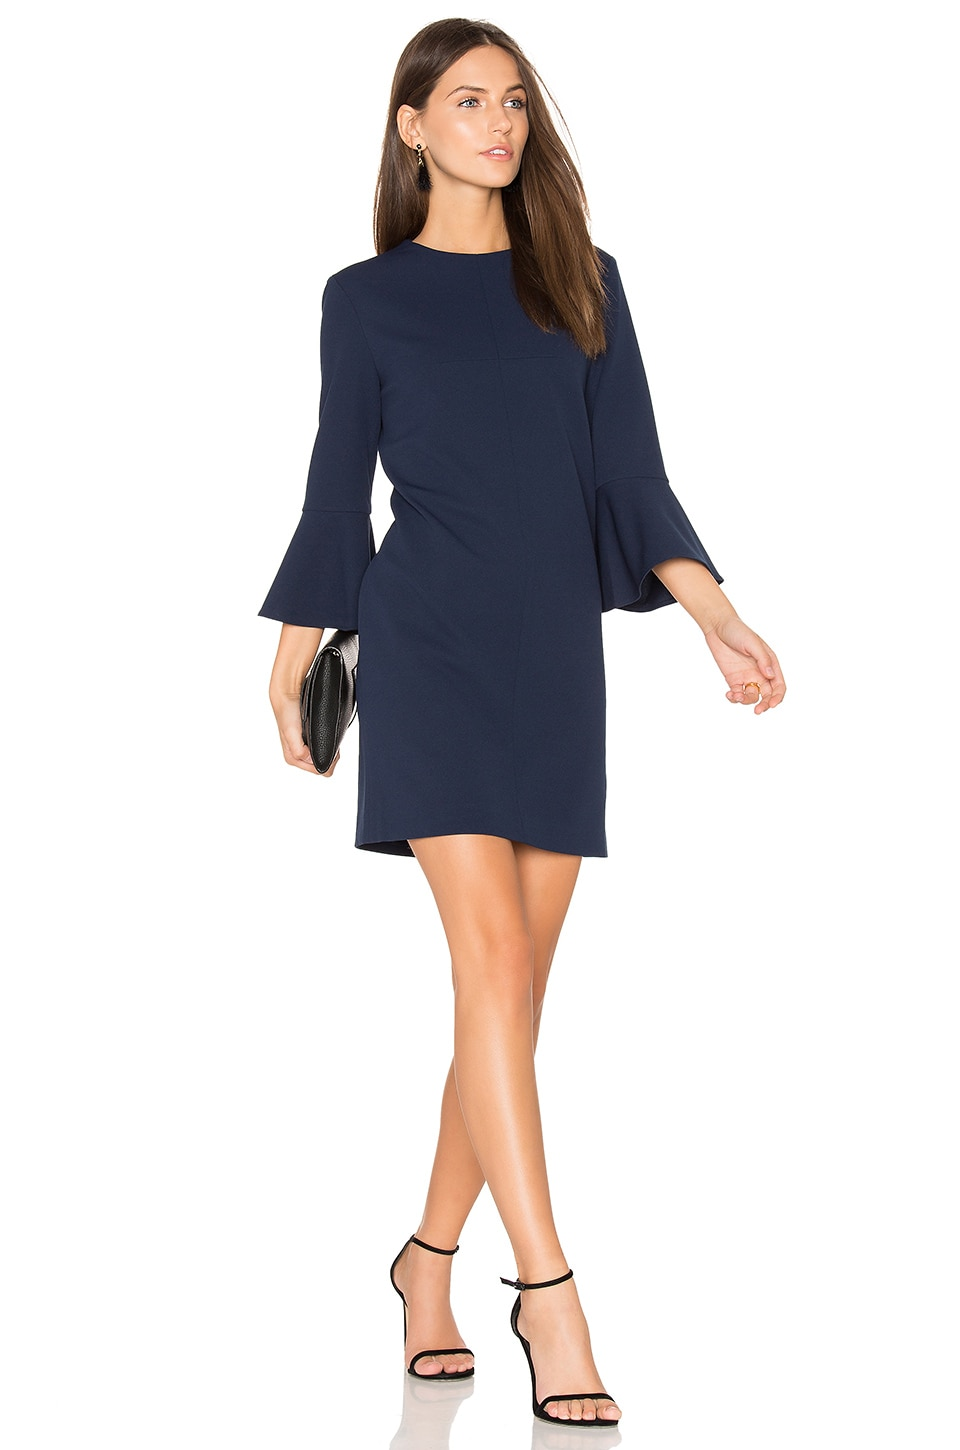 Tibi Bell Sleeve Dress in Midnight Navy